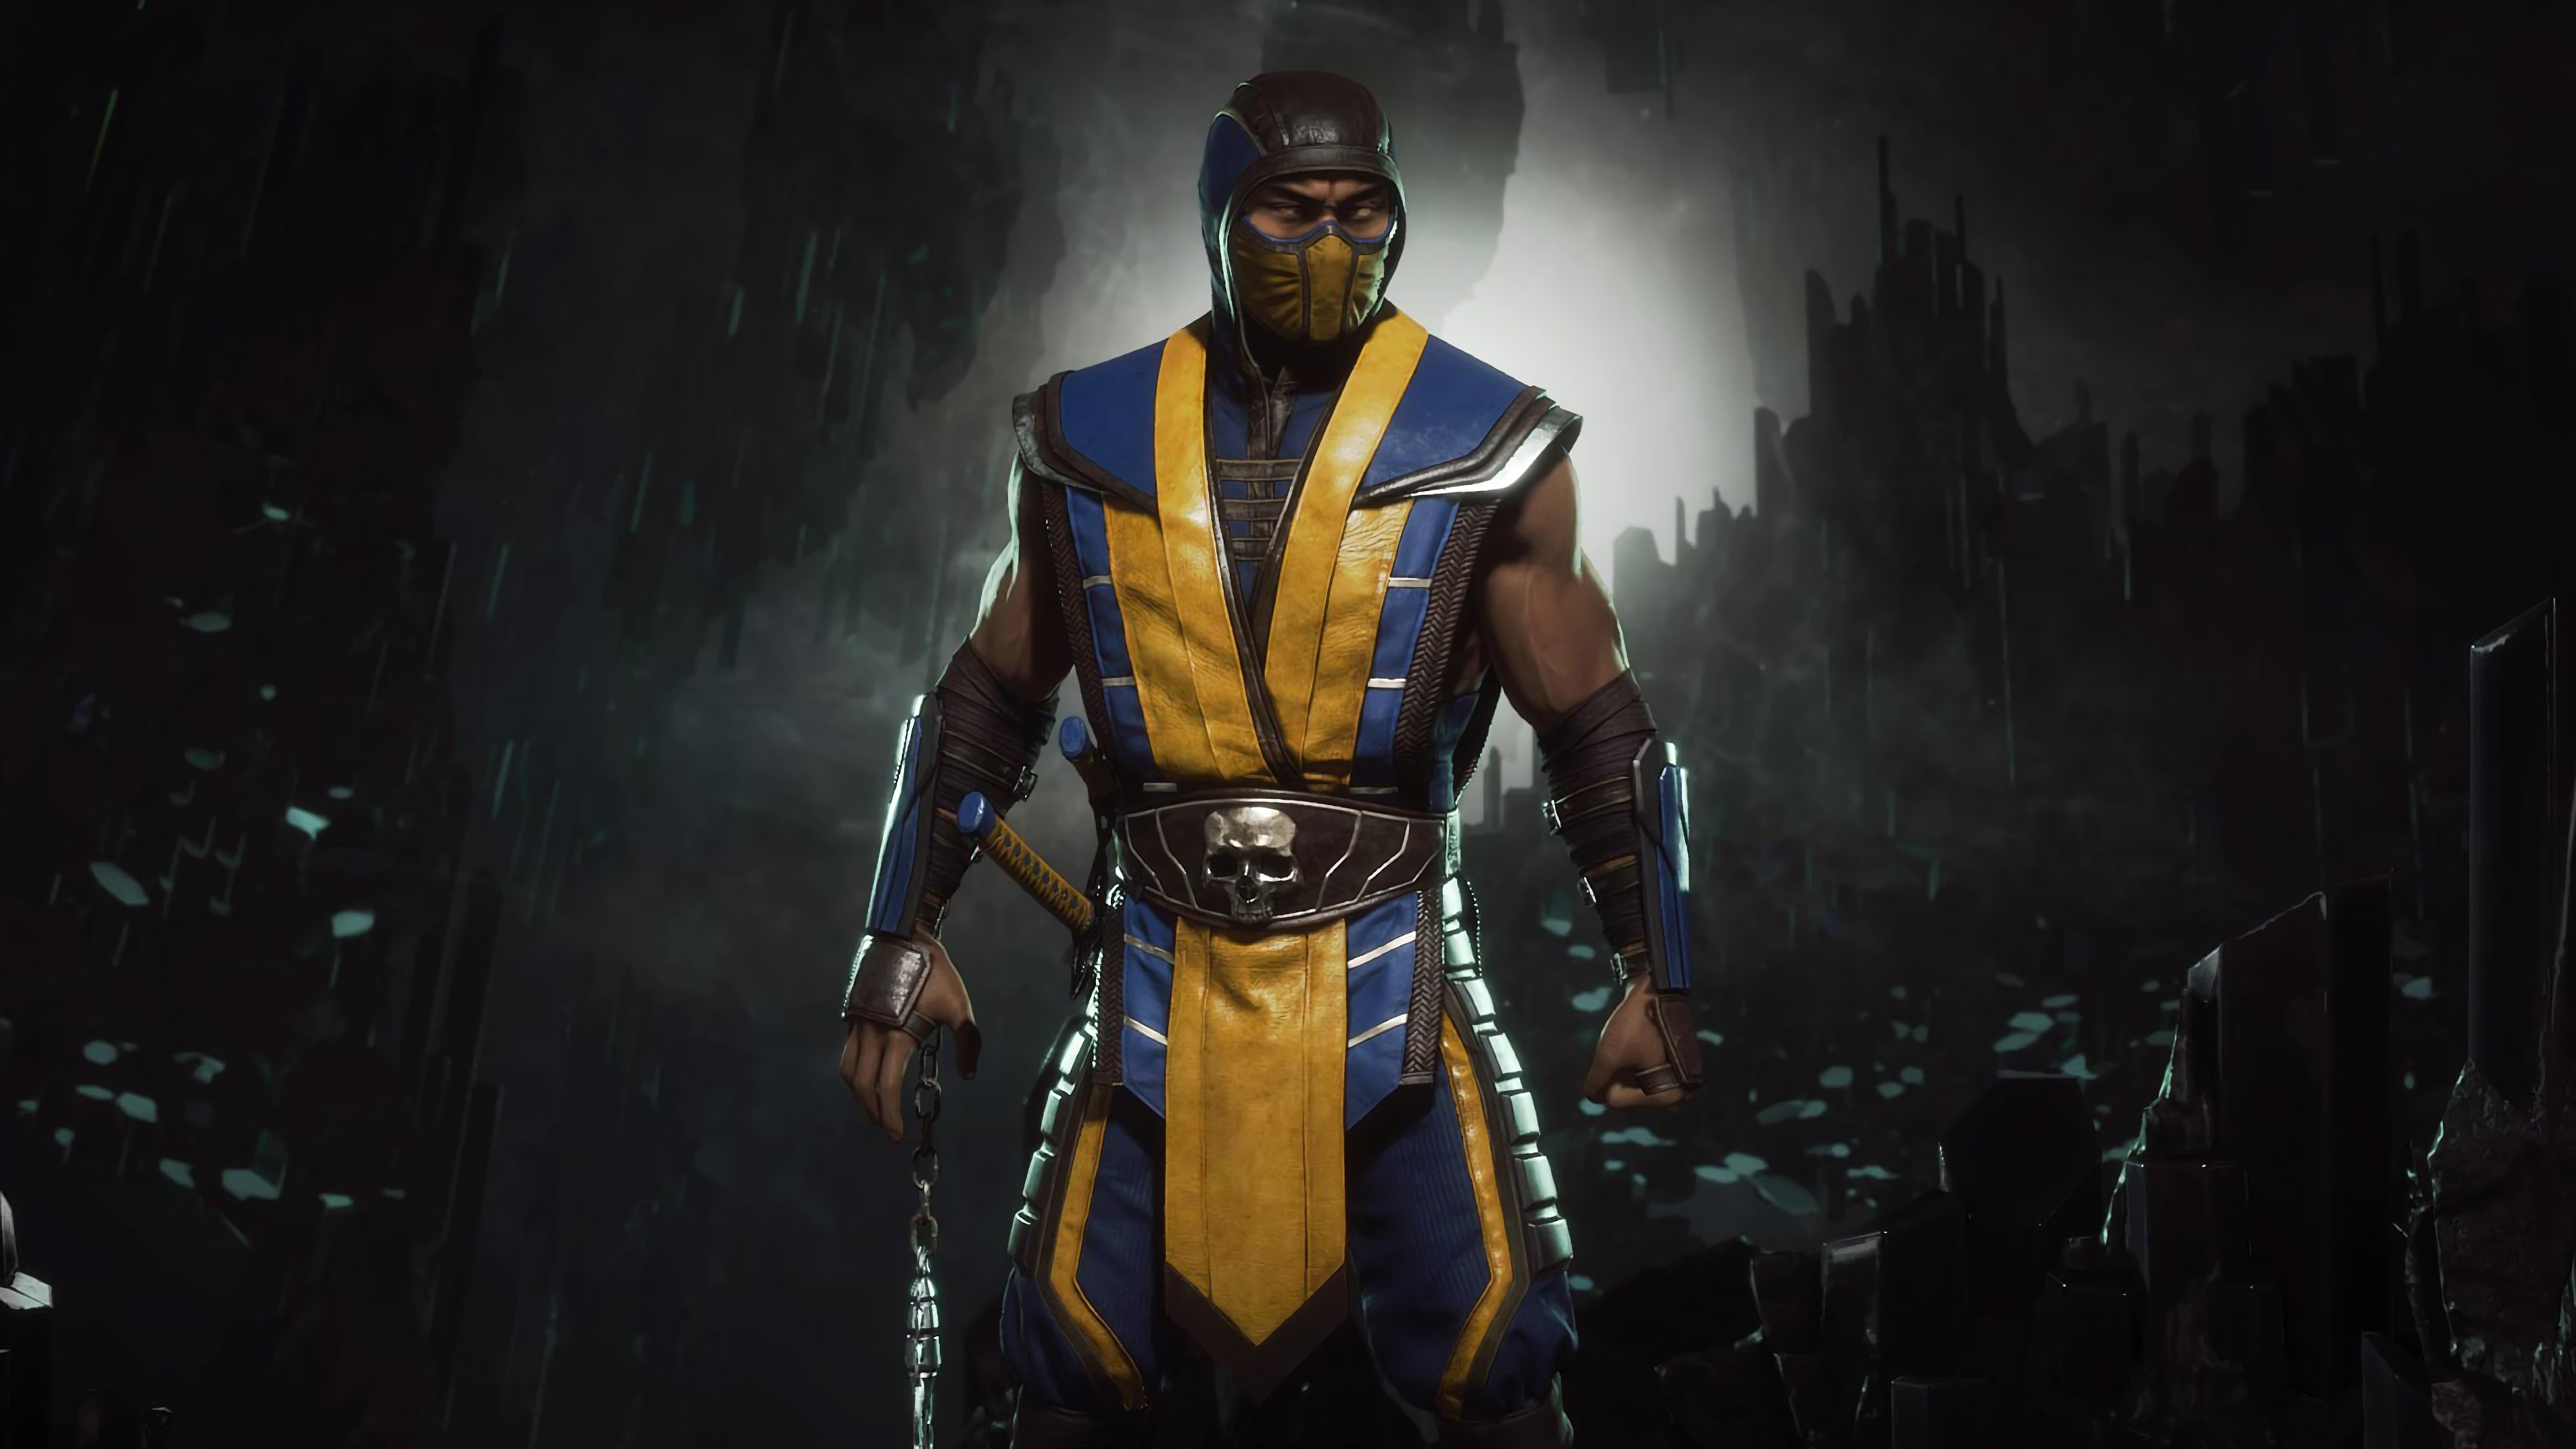 2560x1440 Mortal Kombat 11 Scorpion 4k 1440p Resolution Image Hd Games 4k Wallpapers Images Photos And Background